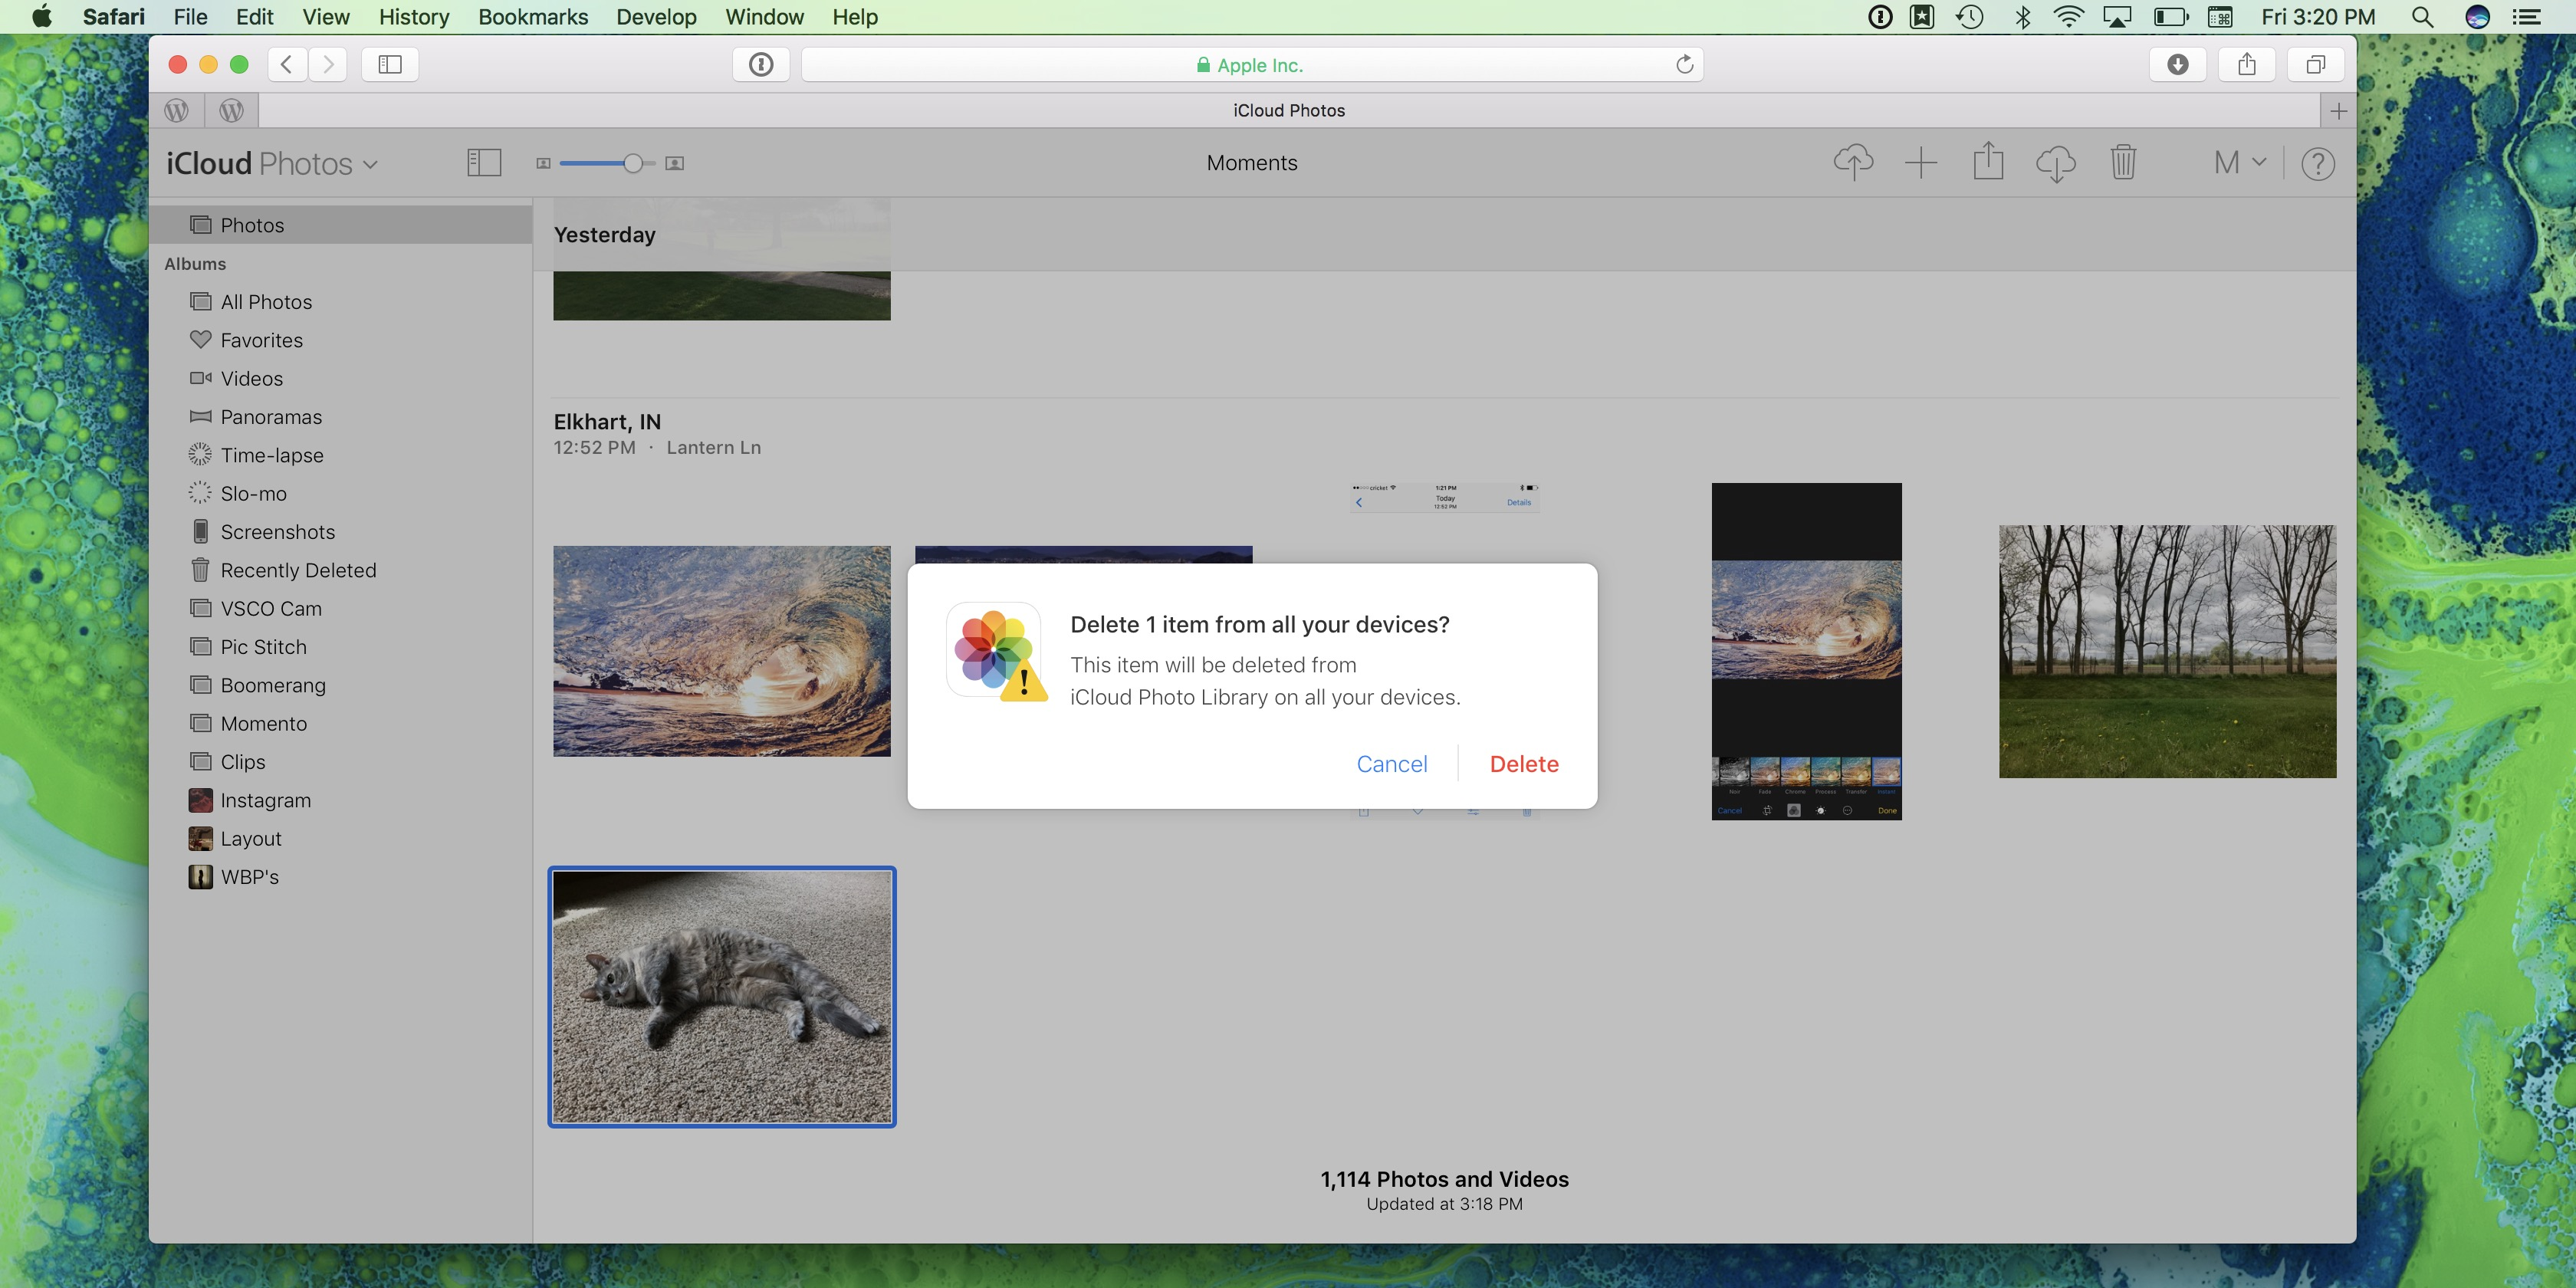 Image showing delete warning in Photos on iCloud.com